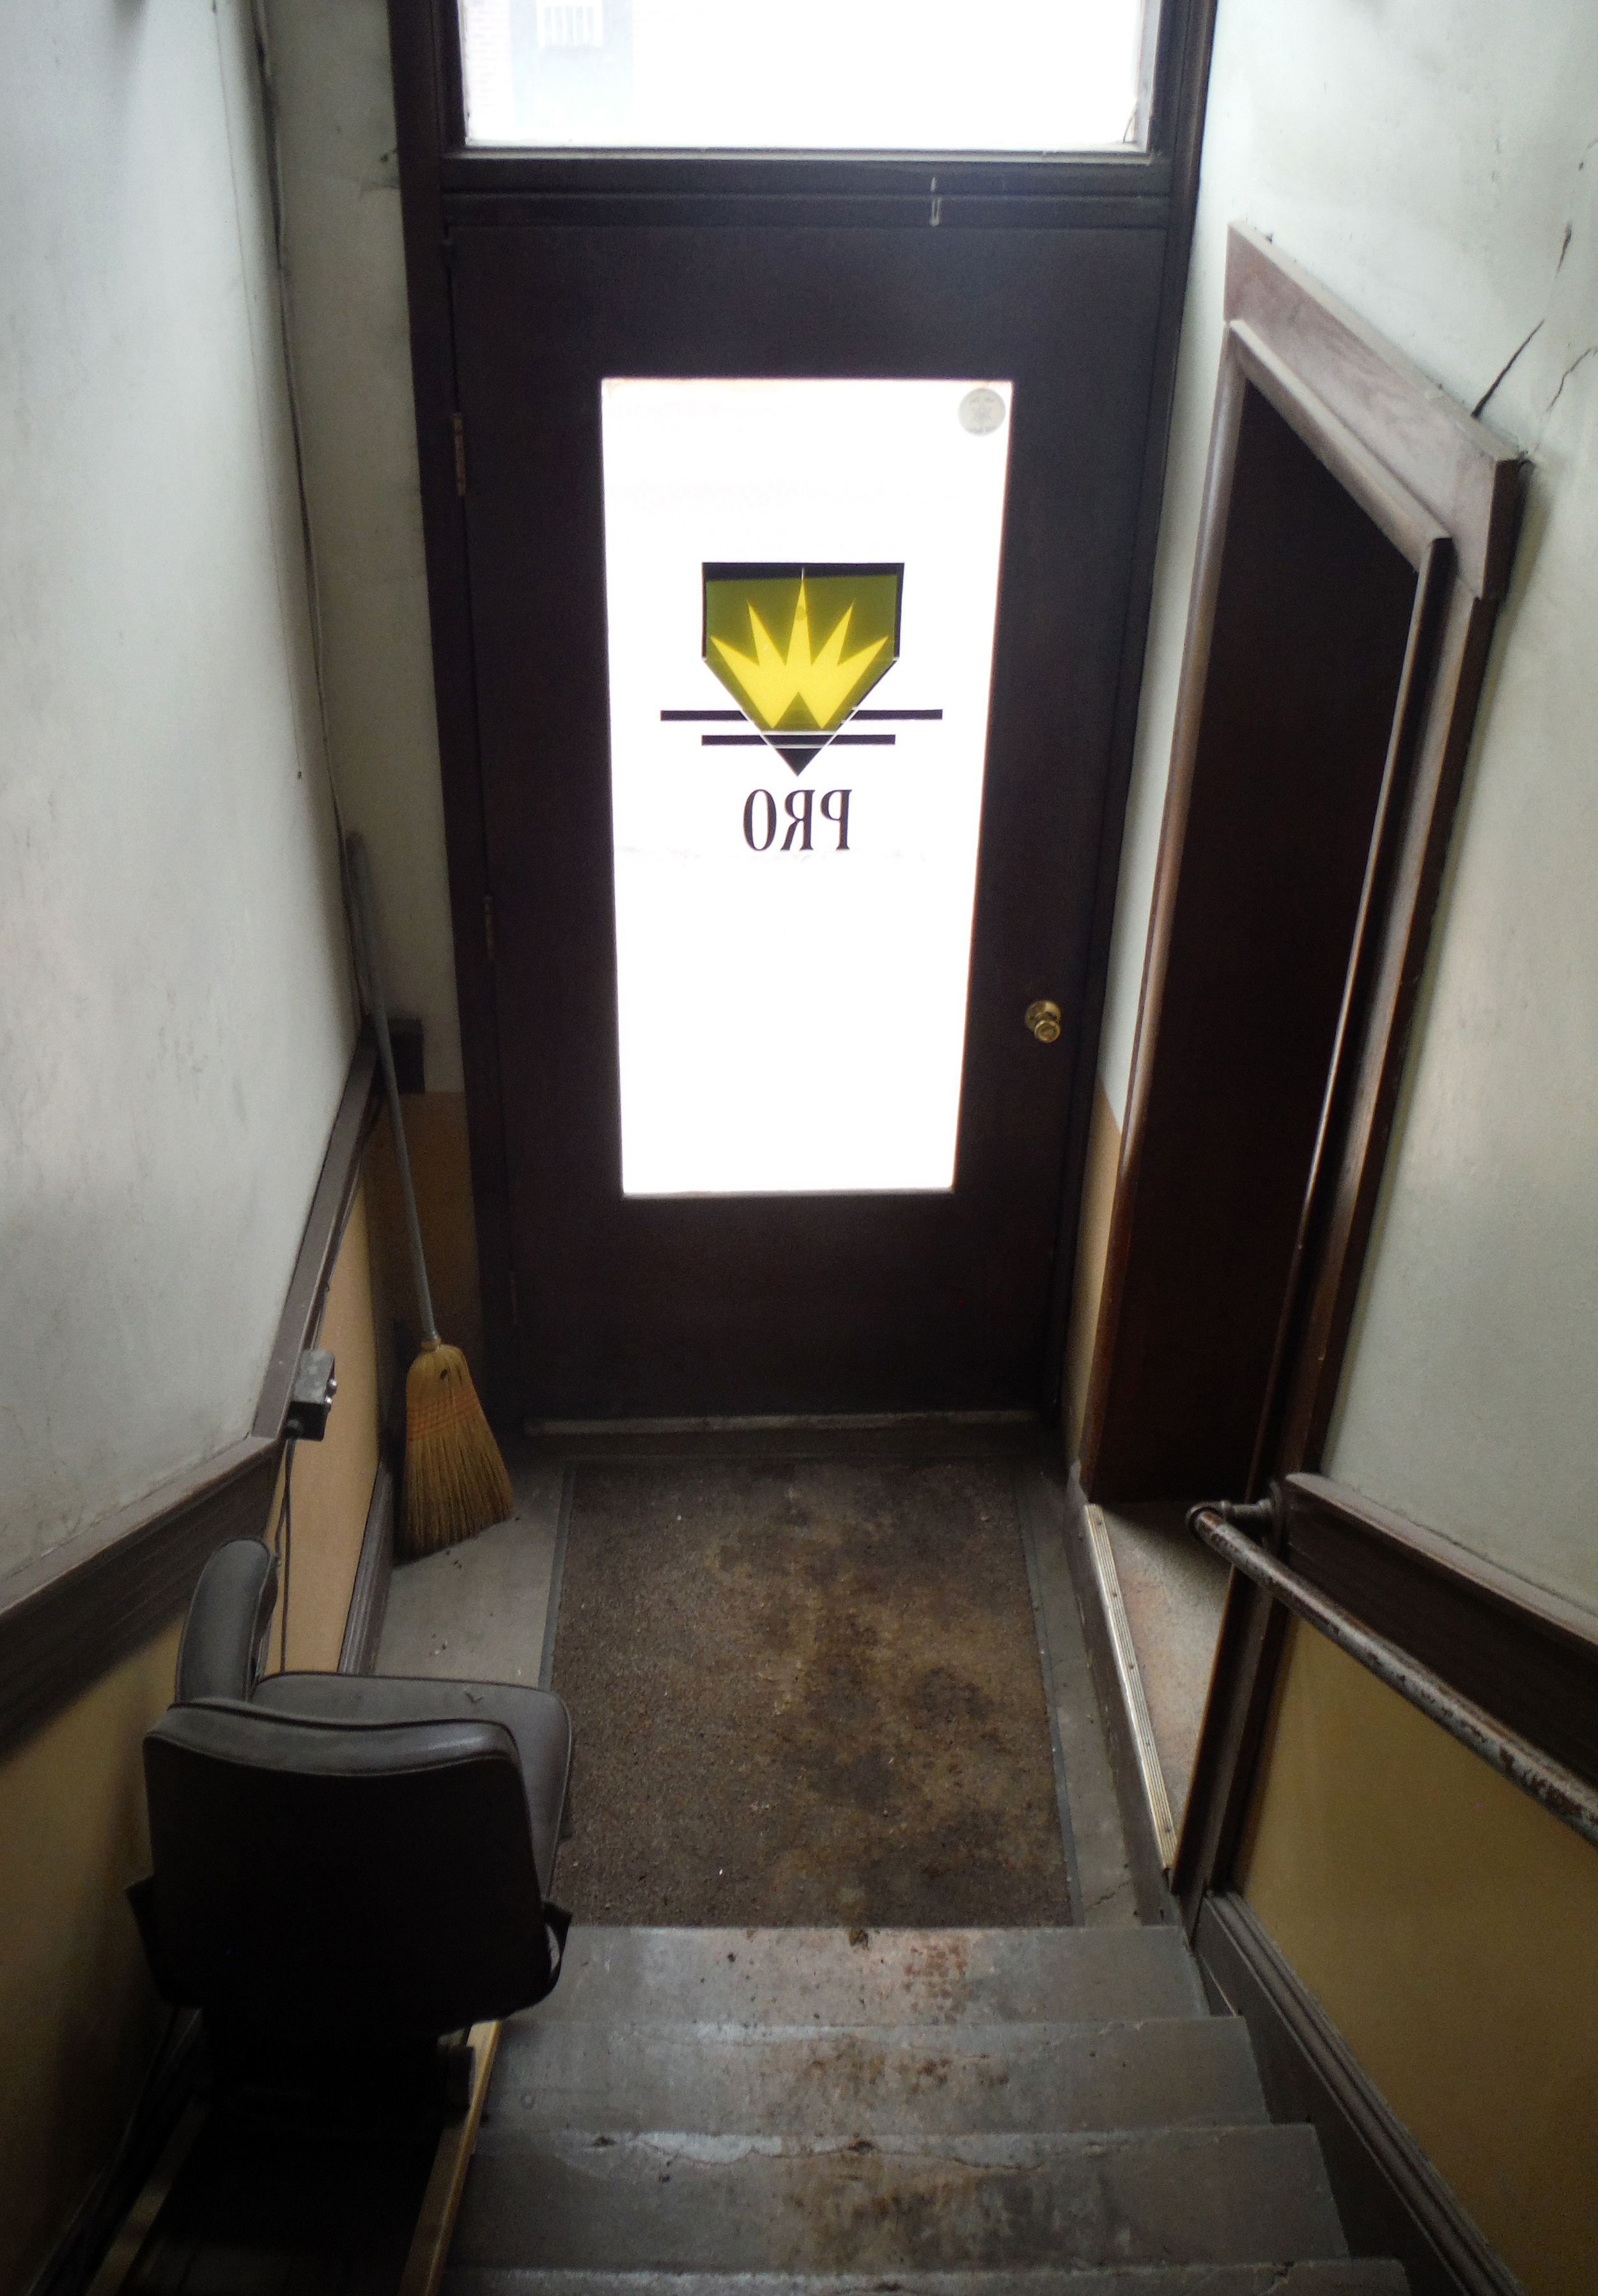 First Street entrance at the bottom of the stairs. Photo by Sydney Haltom, March 2015.